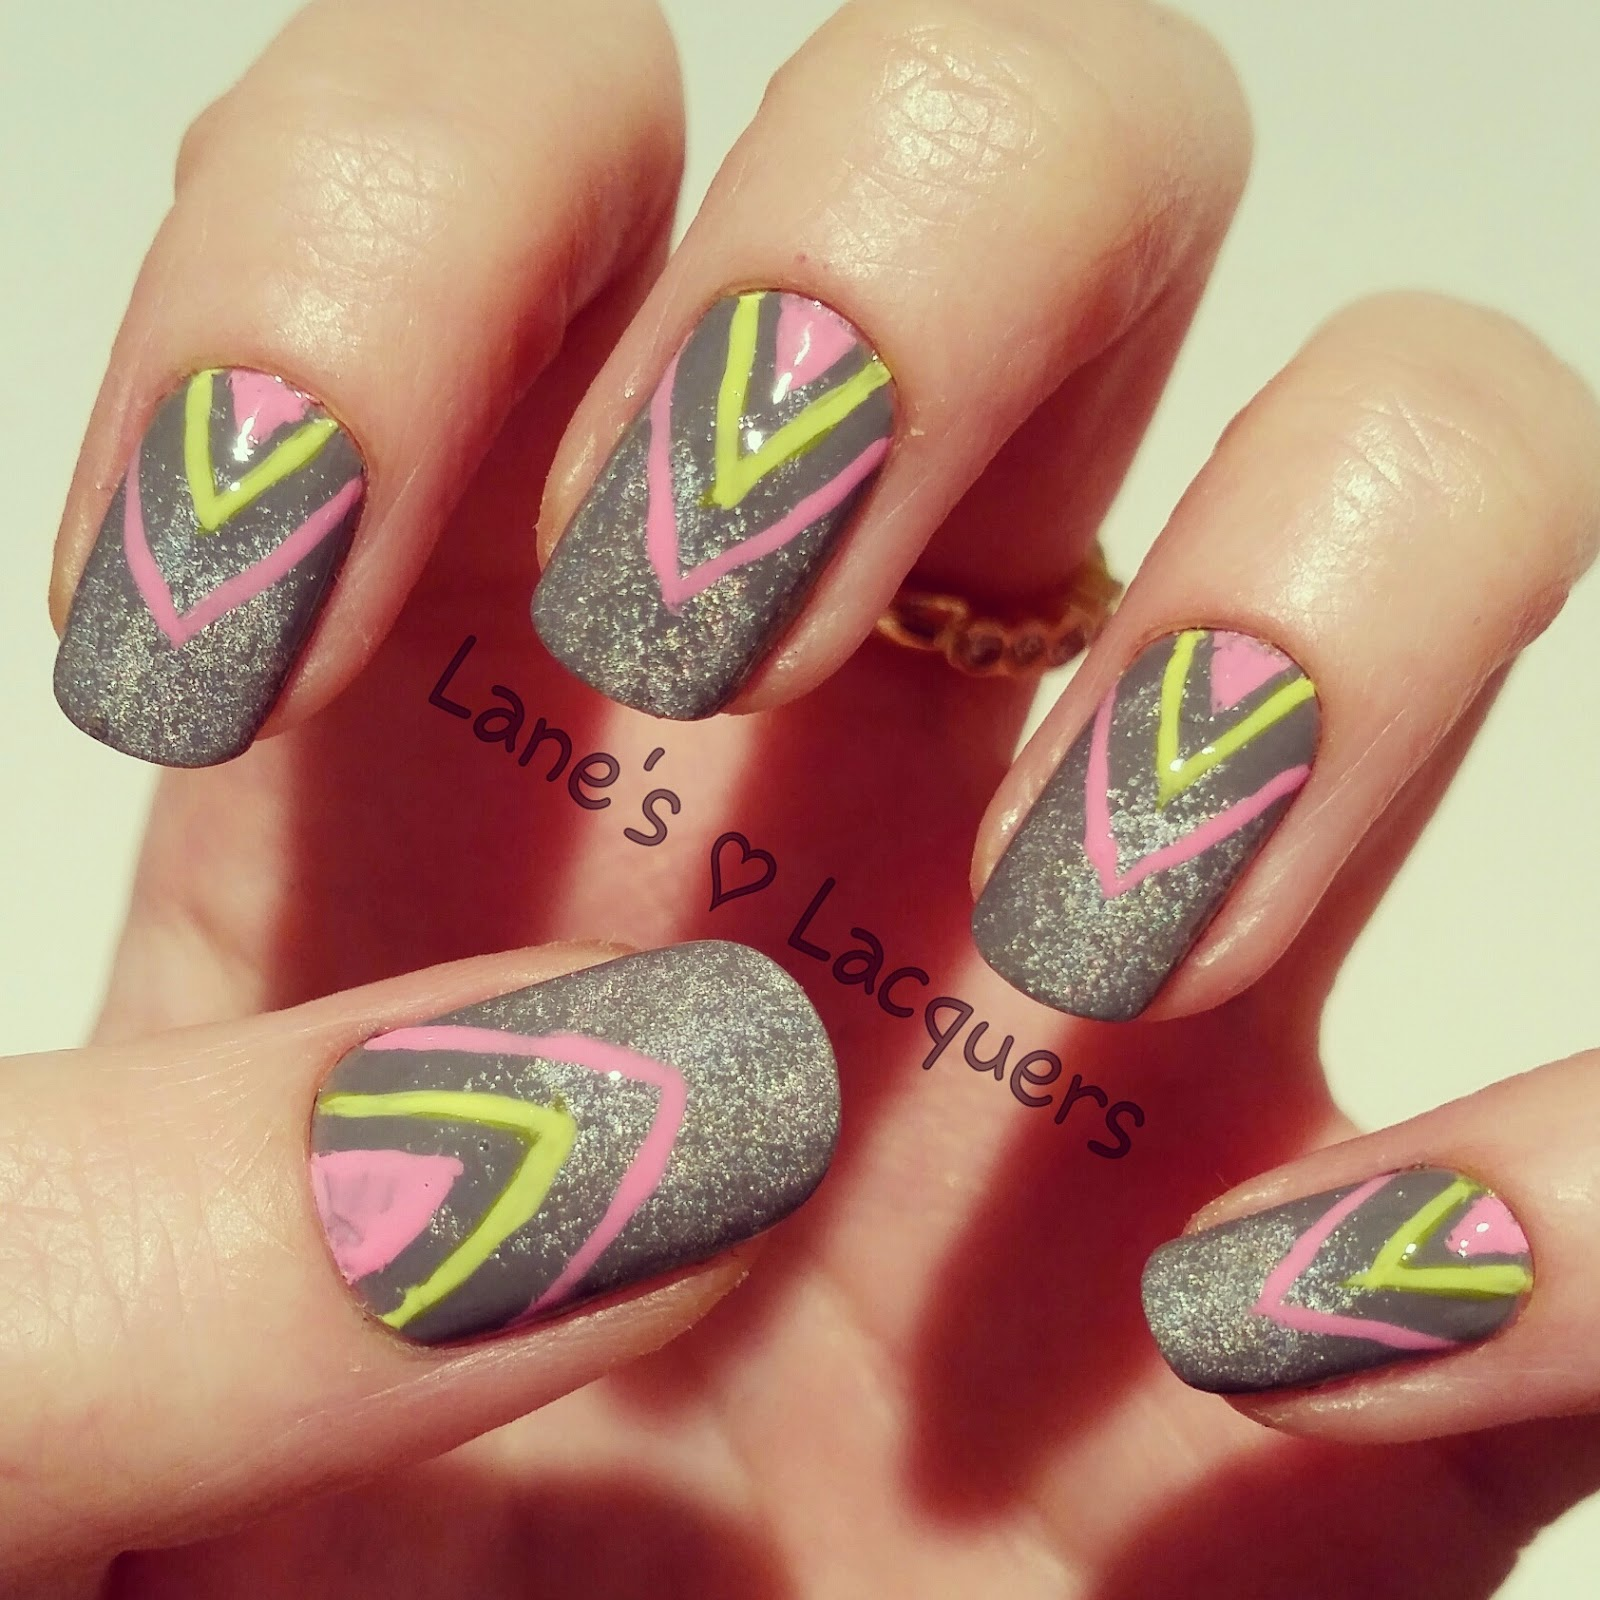 grey-holo-base-neon-chevron-freehand-nail-art